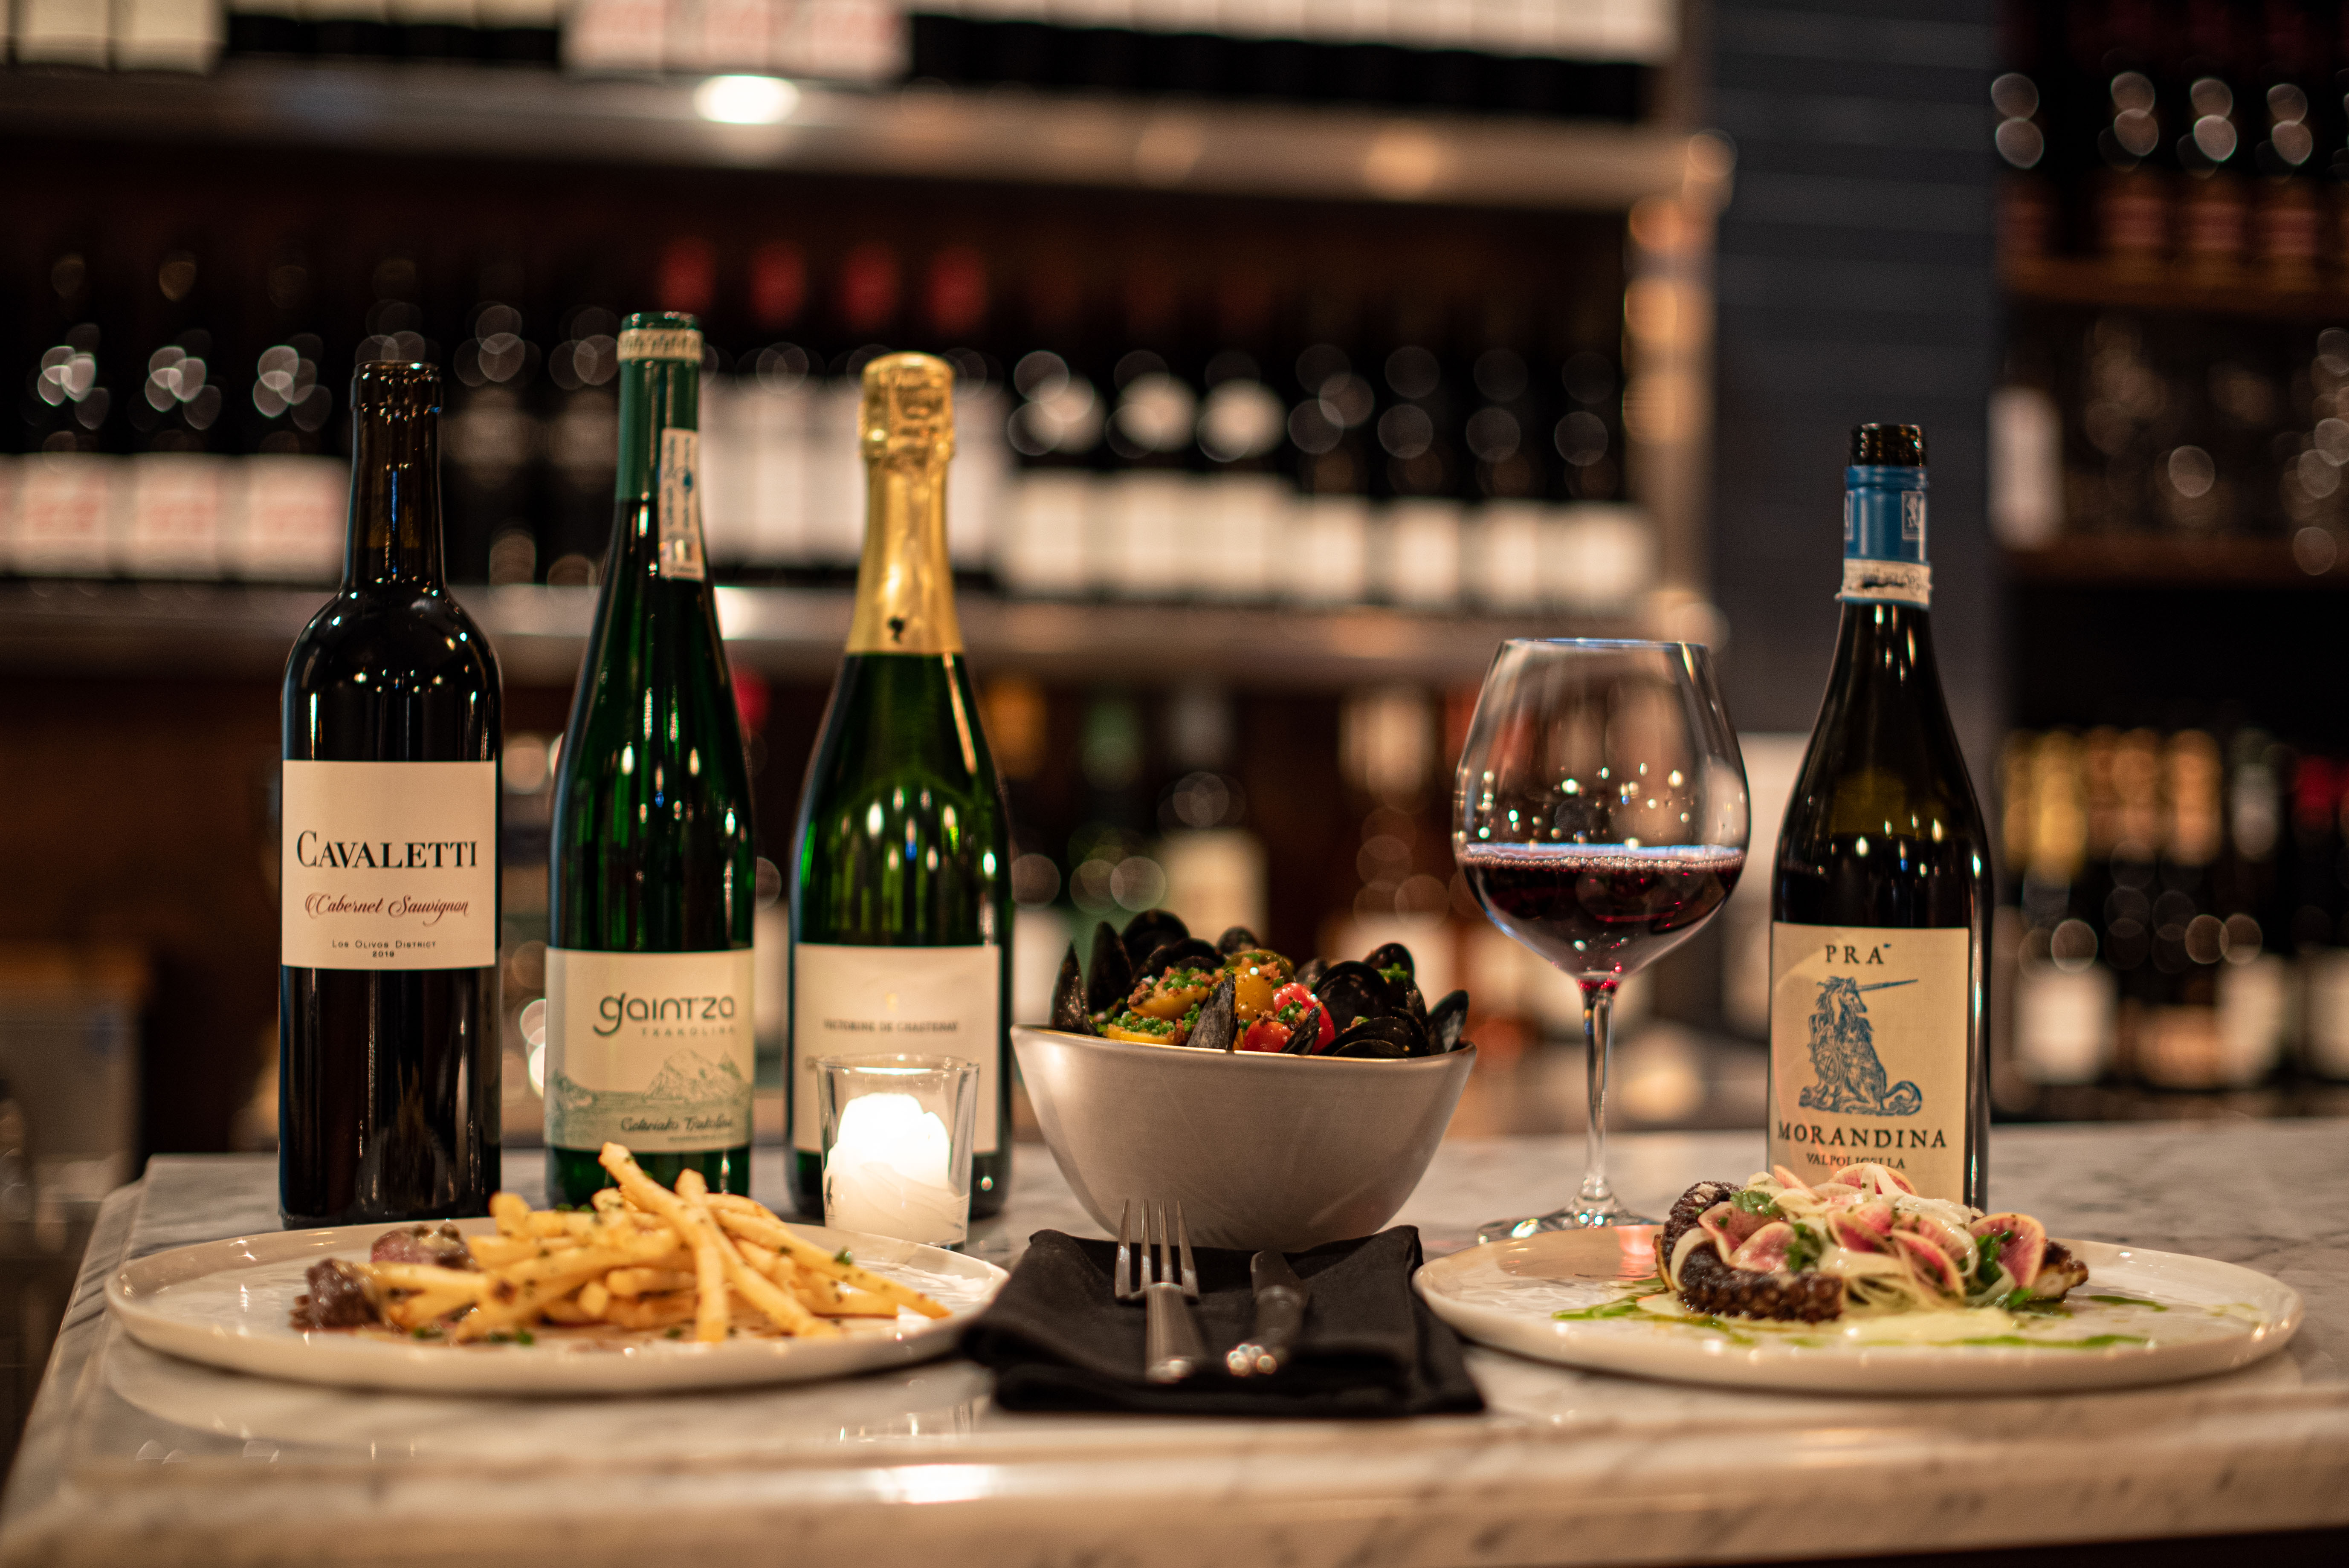 Bottles of wine and small plates Italian and French food on a marble countertop.